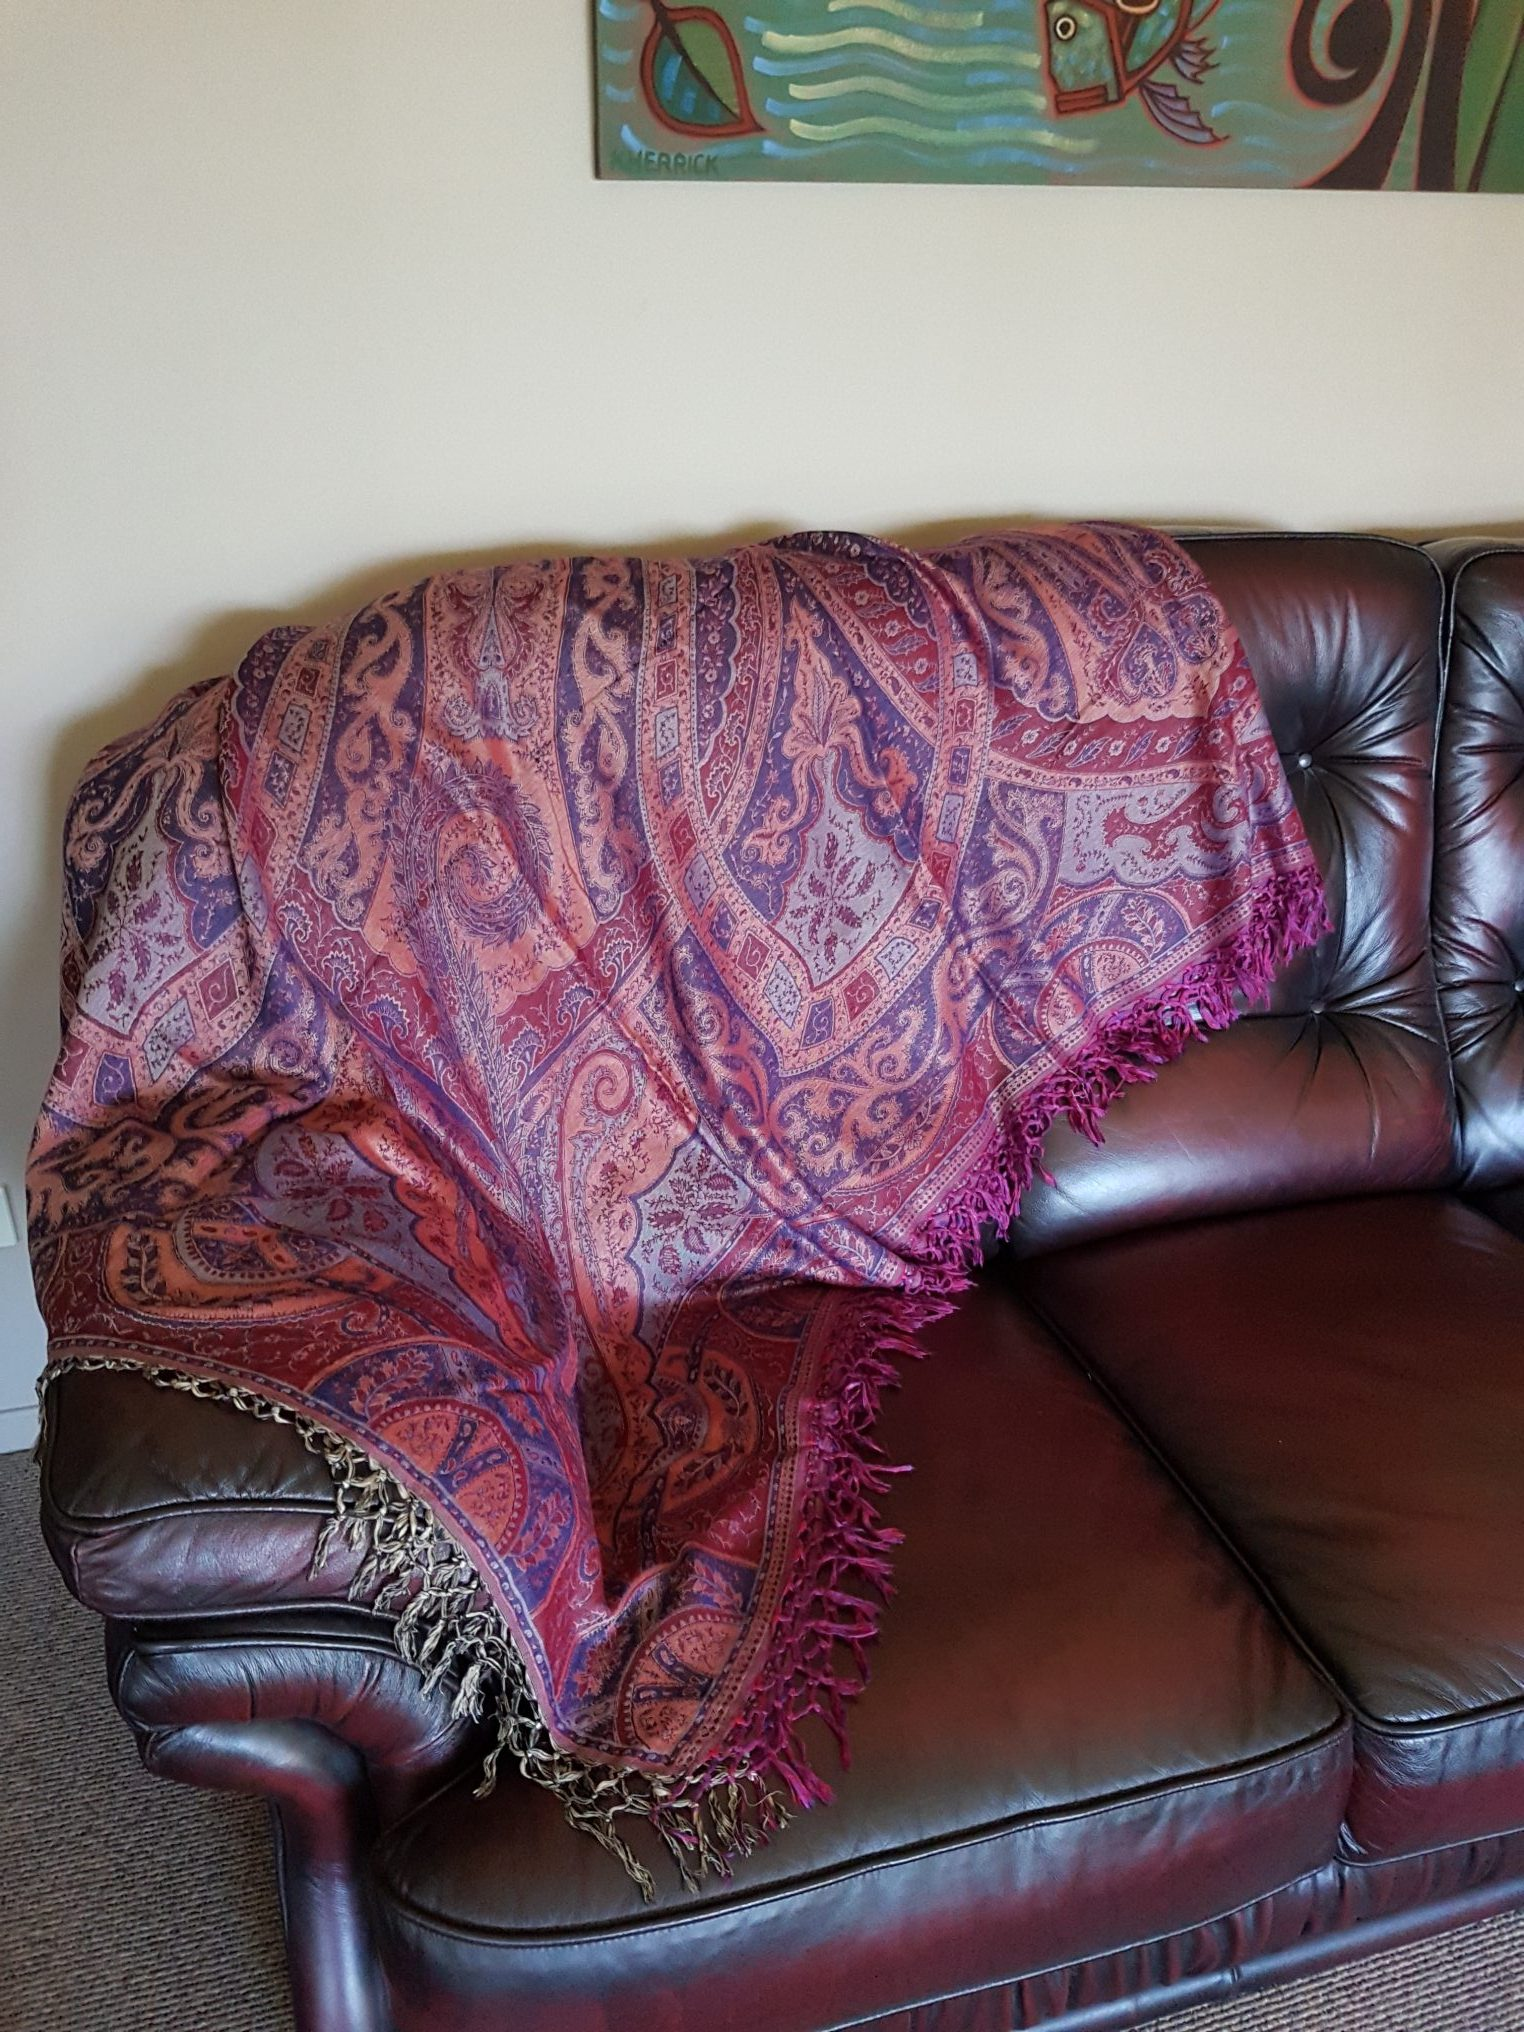 Sofa Throw In Red/Blue